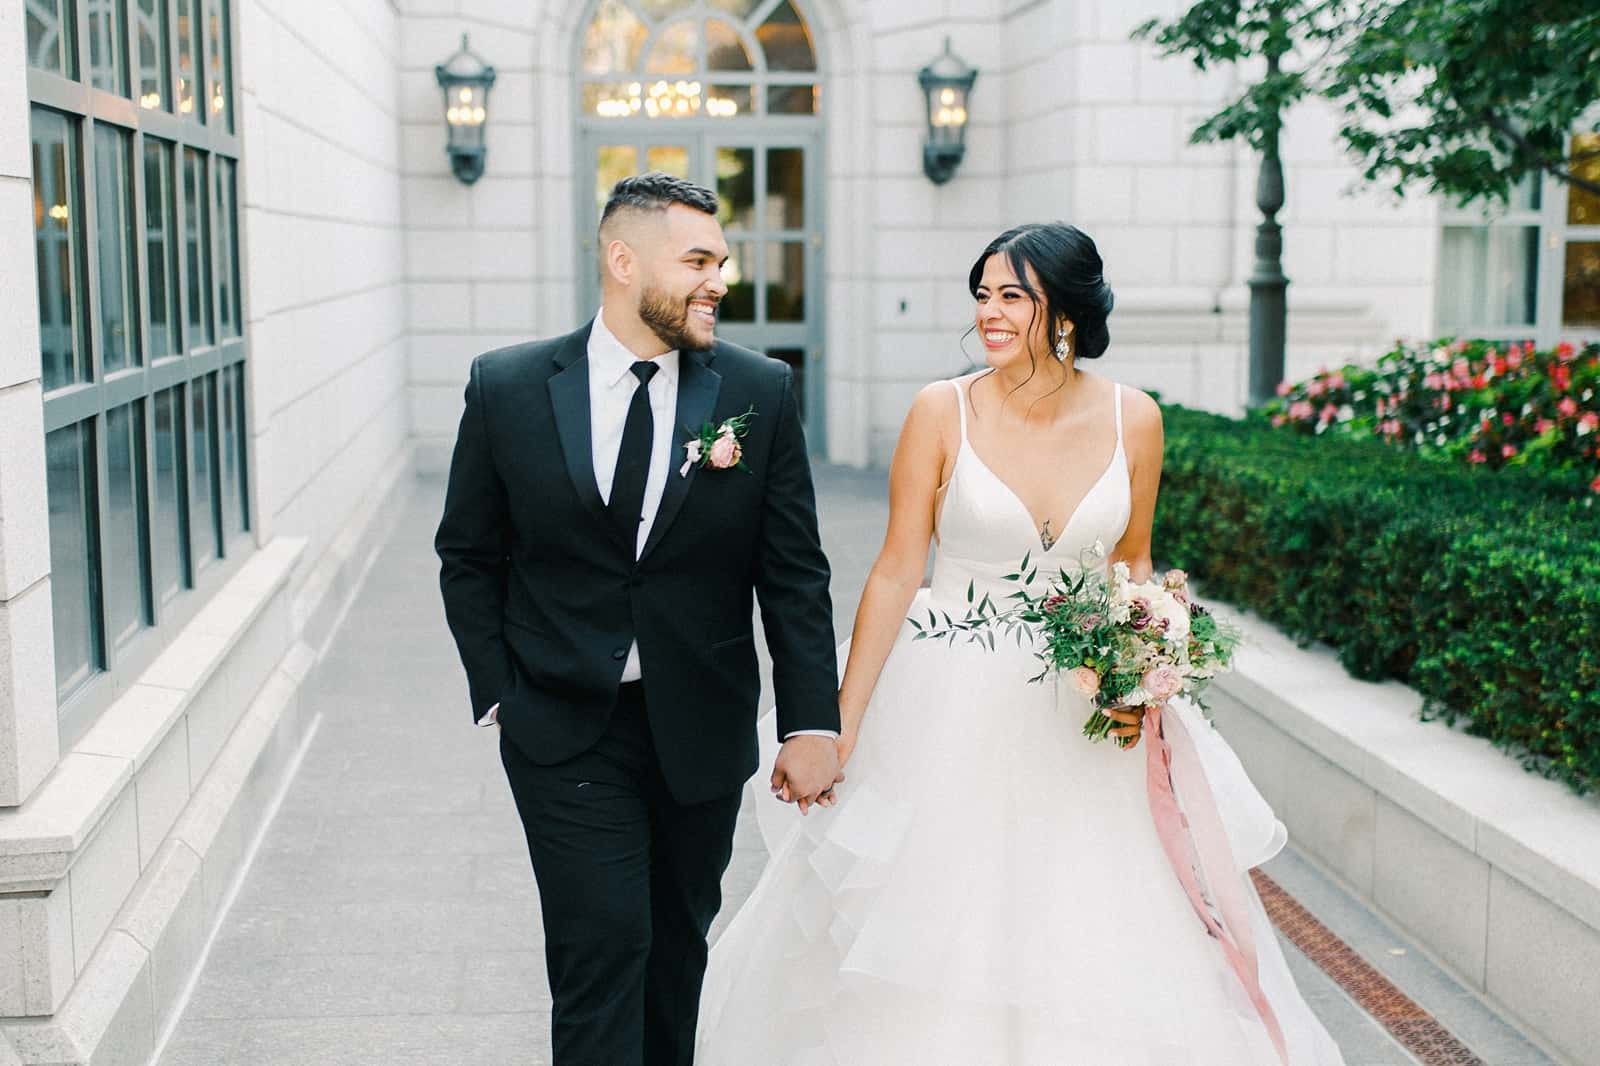 Bride and groom laughing at the Grand America Hotel wedding